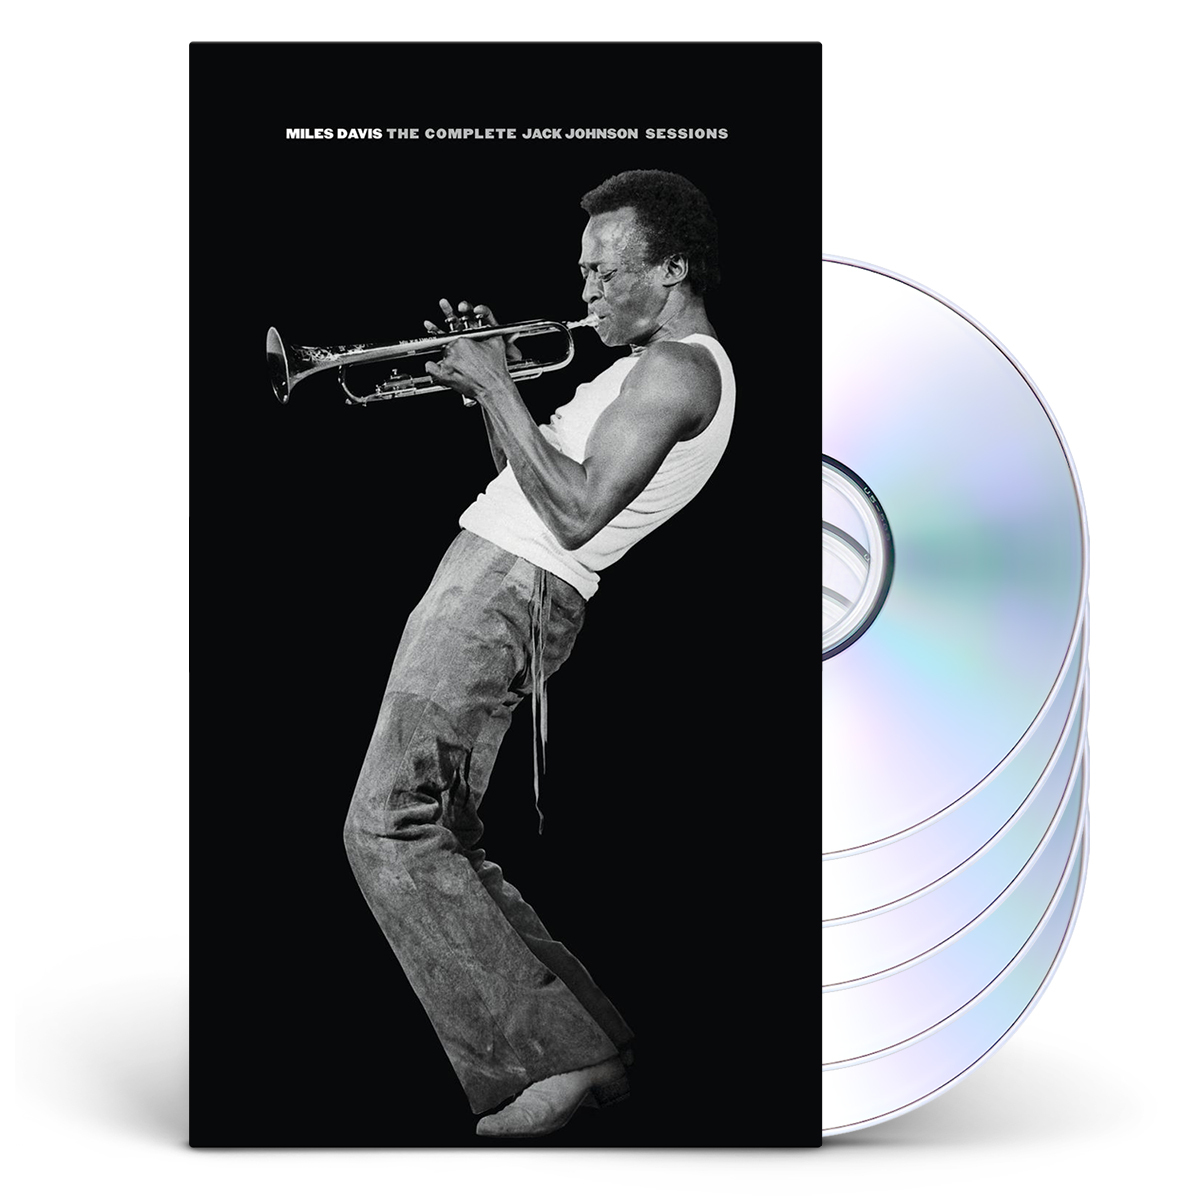 Miles Davis The Complete Jack Johnson Sessions 5-disc CD